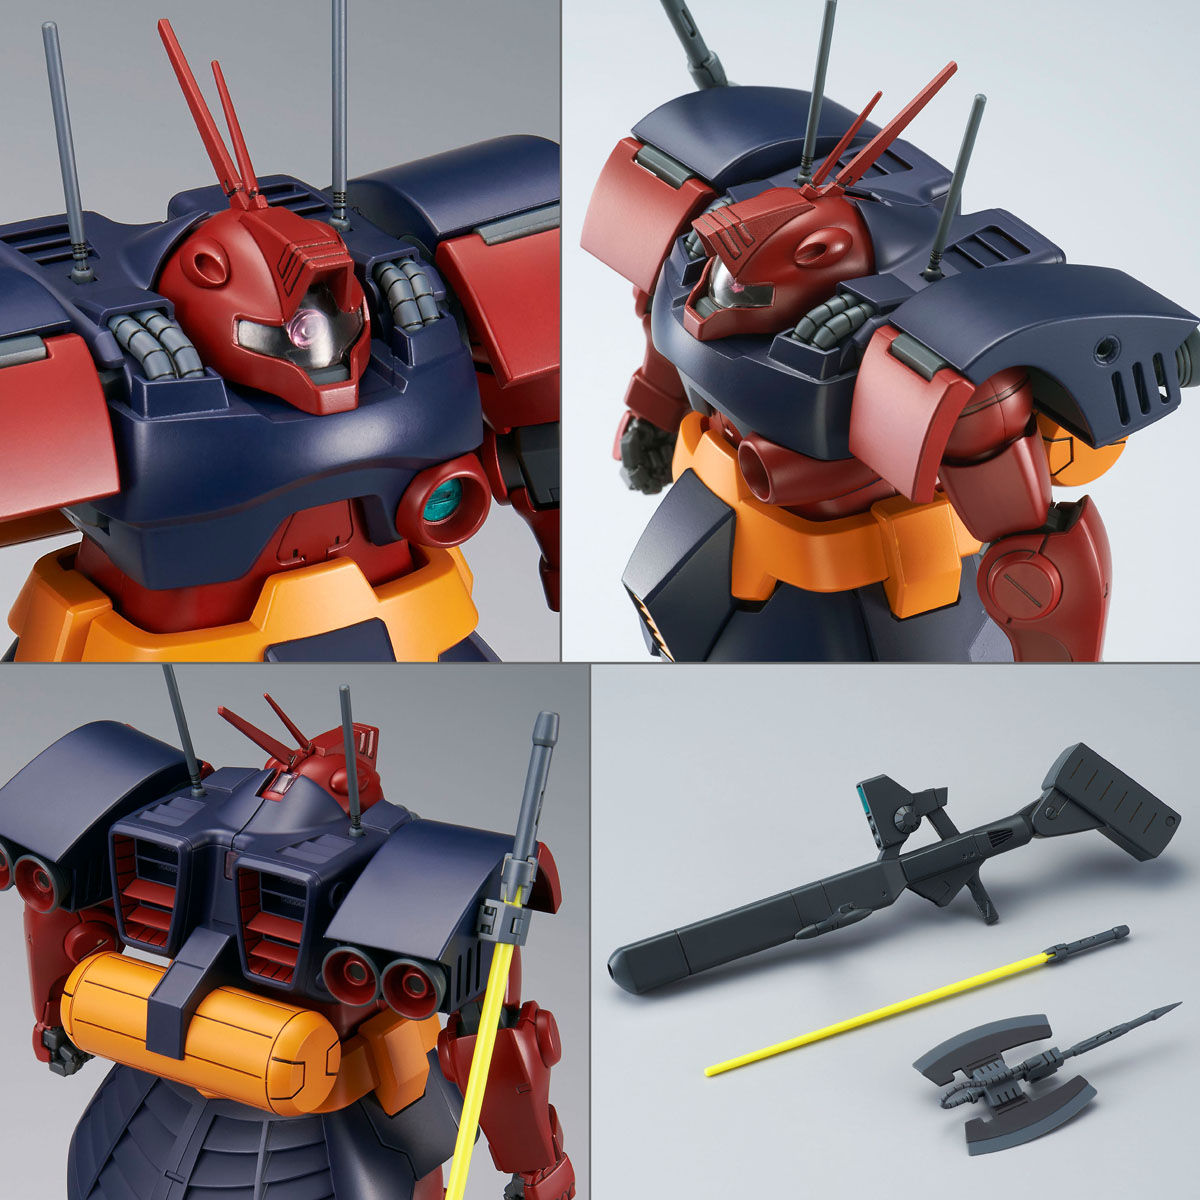 P-Bandai MG 1/100 DWADGE CUSTOM (Ace Pilot Log Series) No.13 images, info